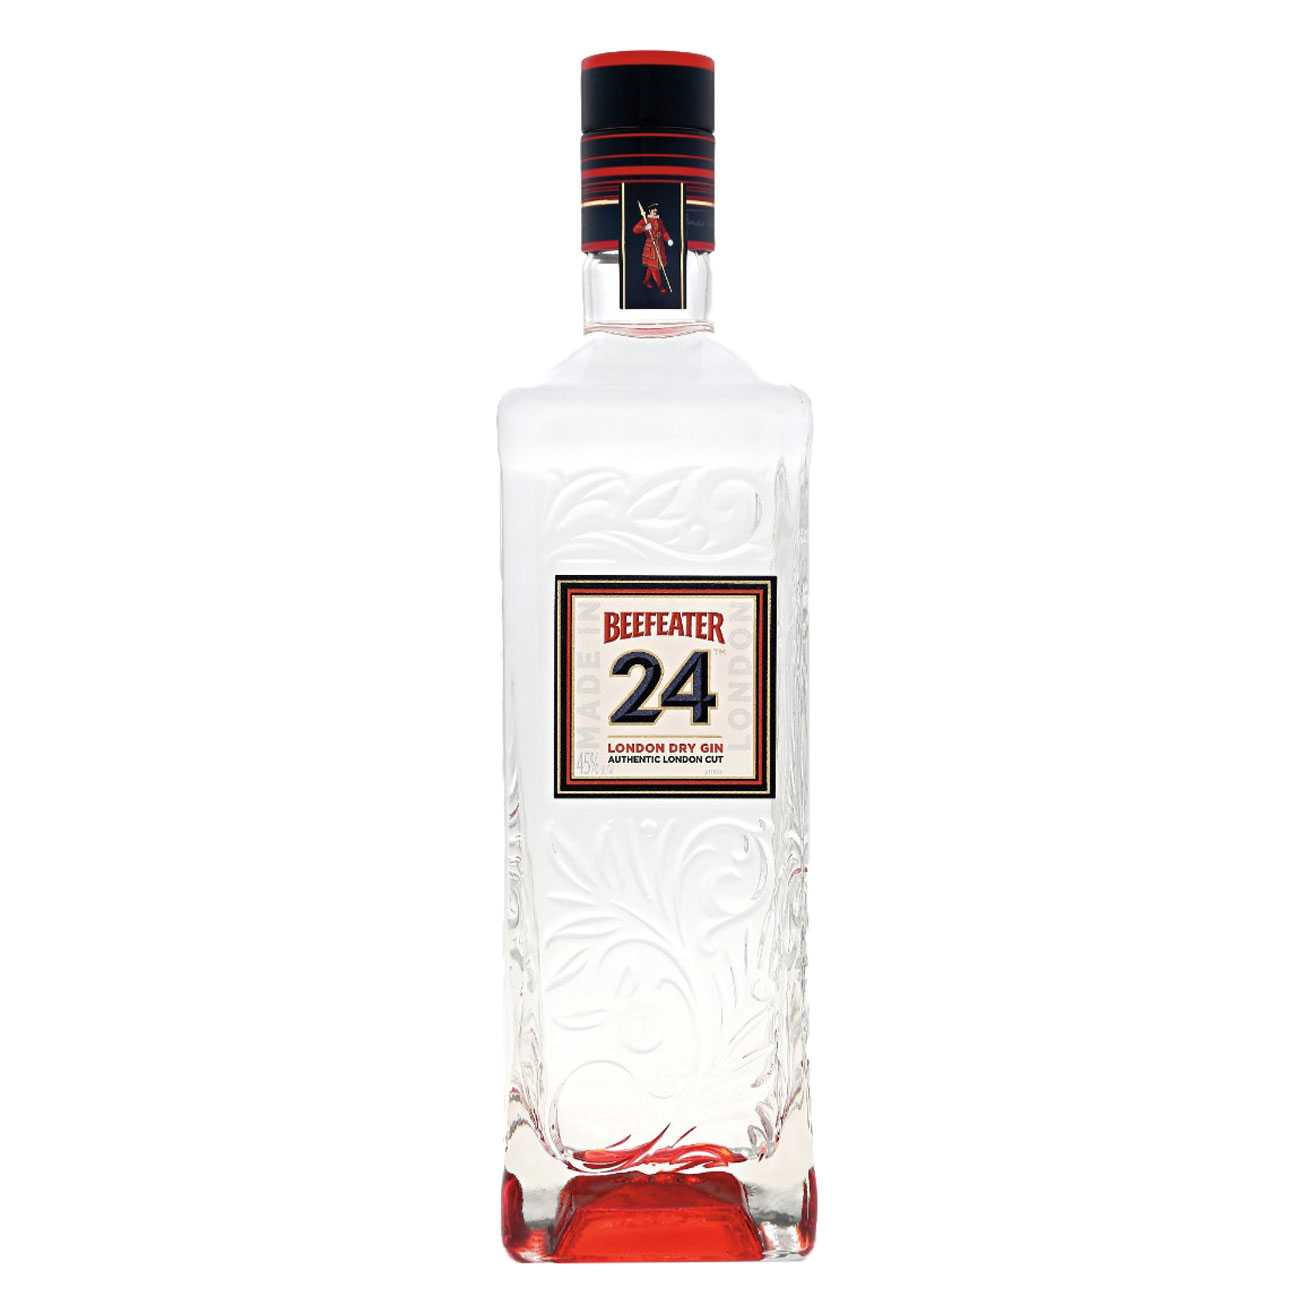 Gin, 24 LONDON DRY GIN 1000 ML, Beefeater